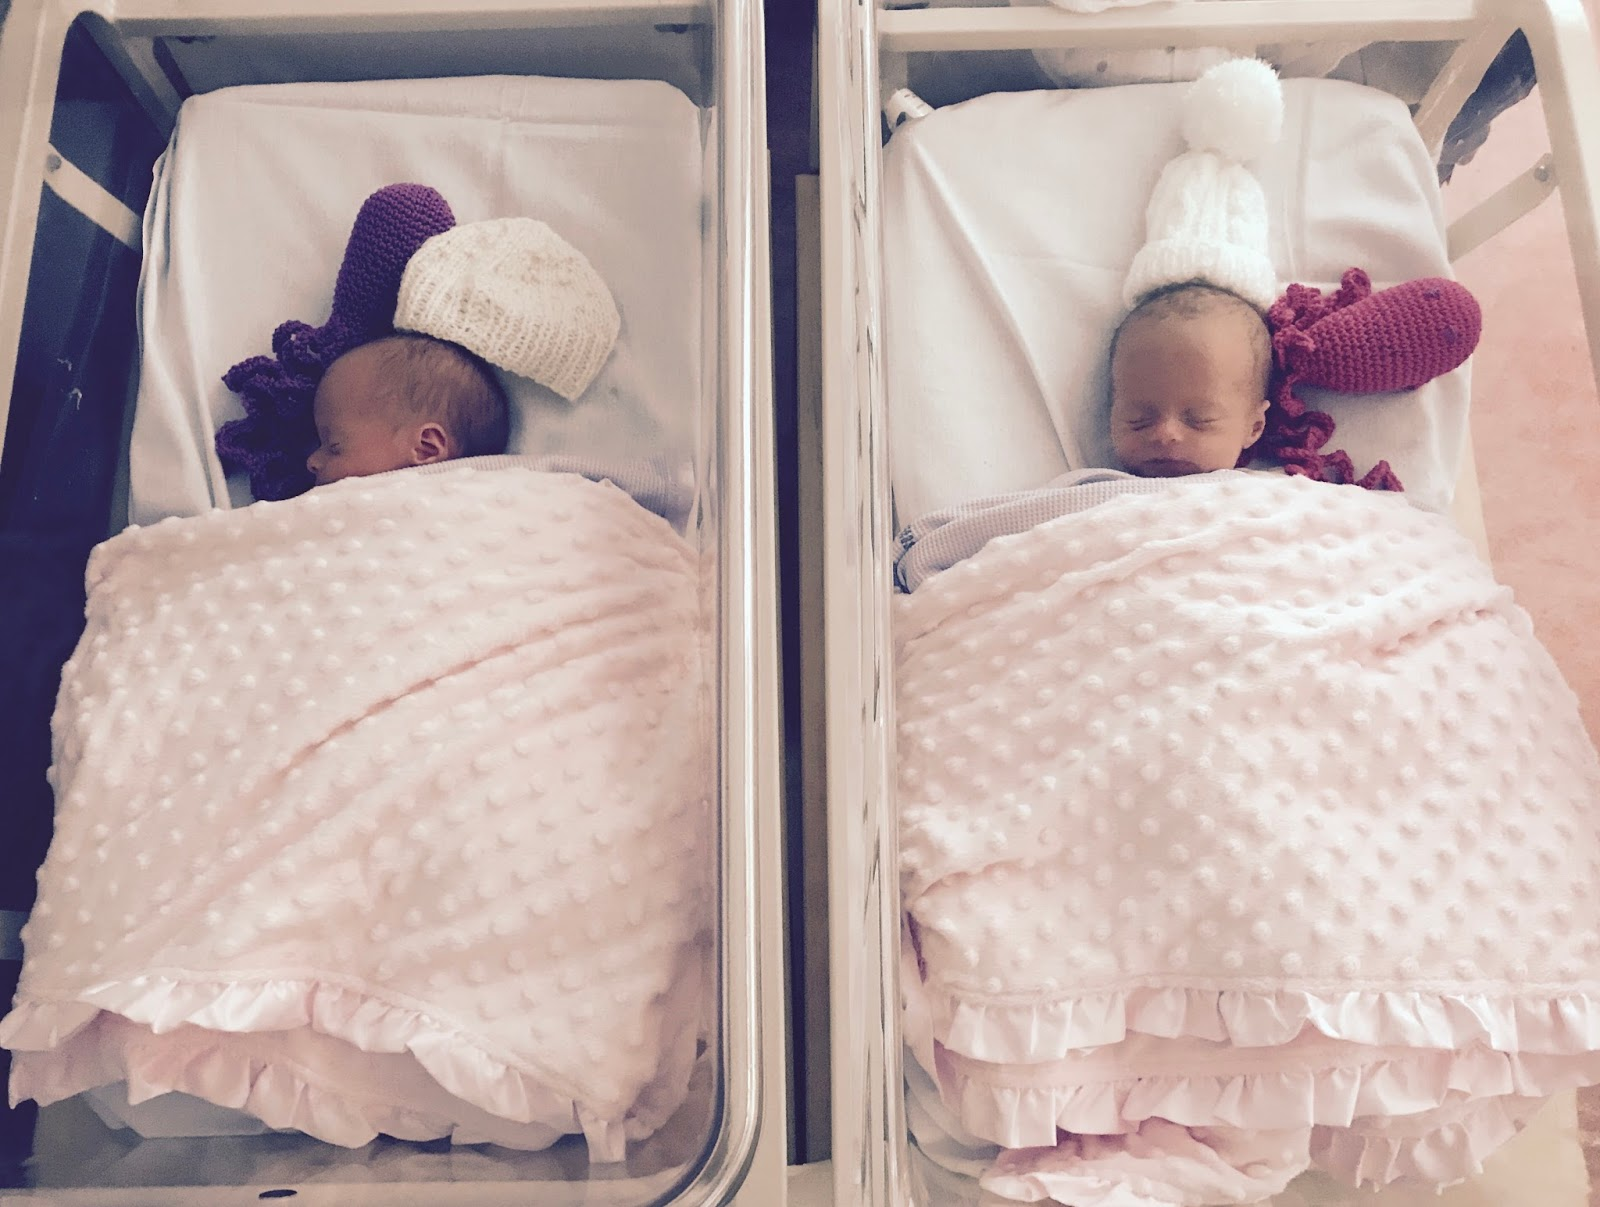 newborn identical twins in hospital